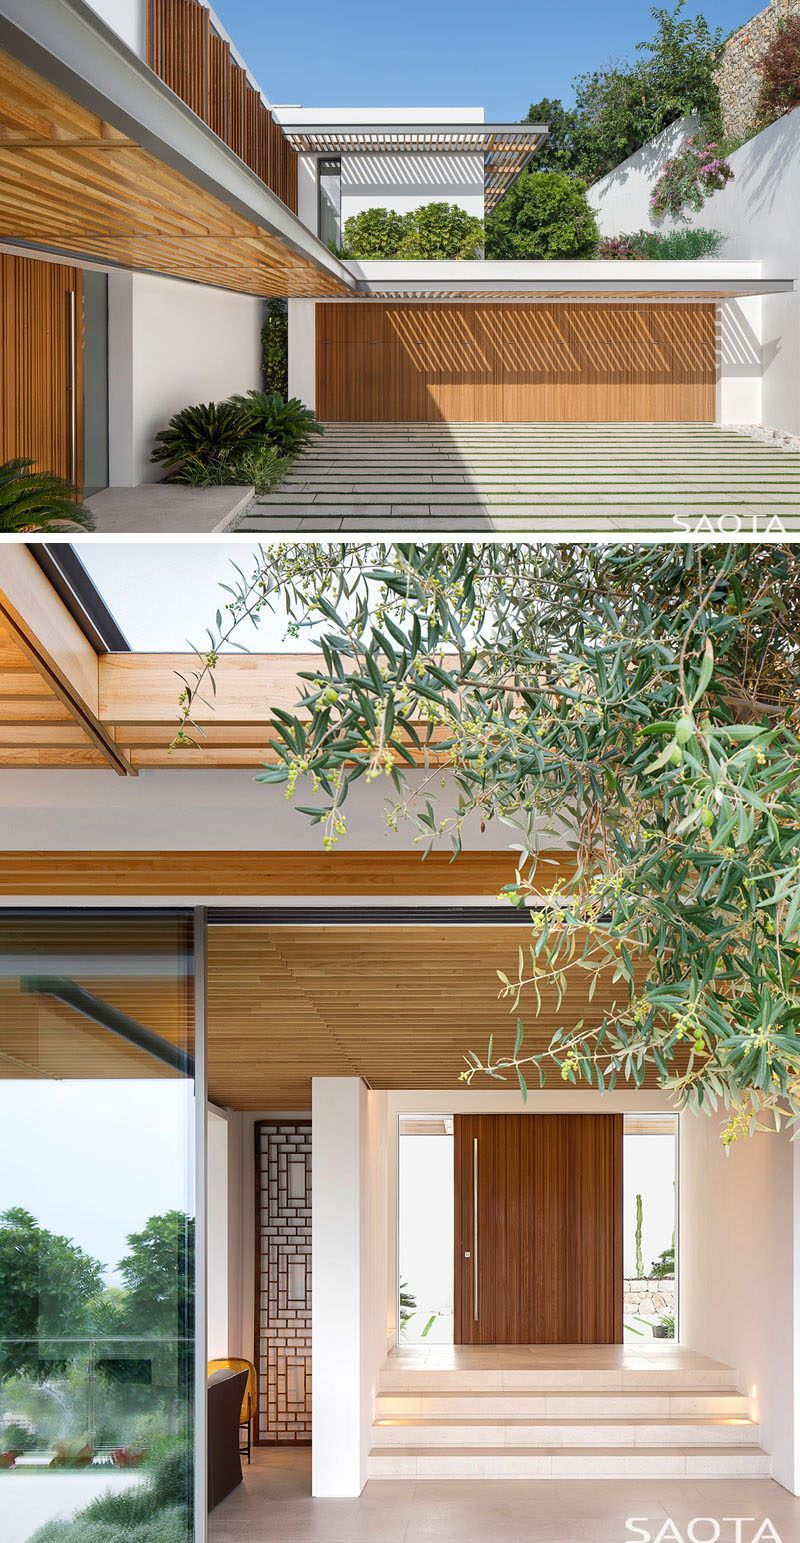 SAOTA Have Recently Completed Their First House In